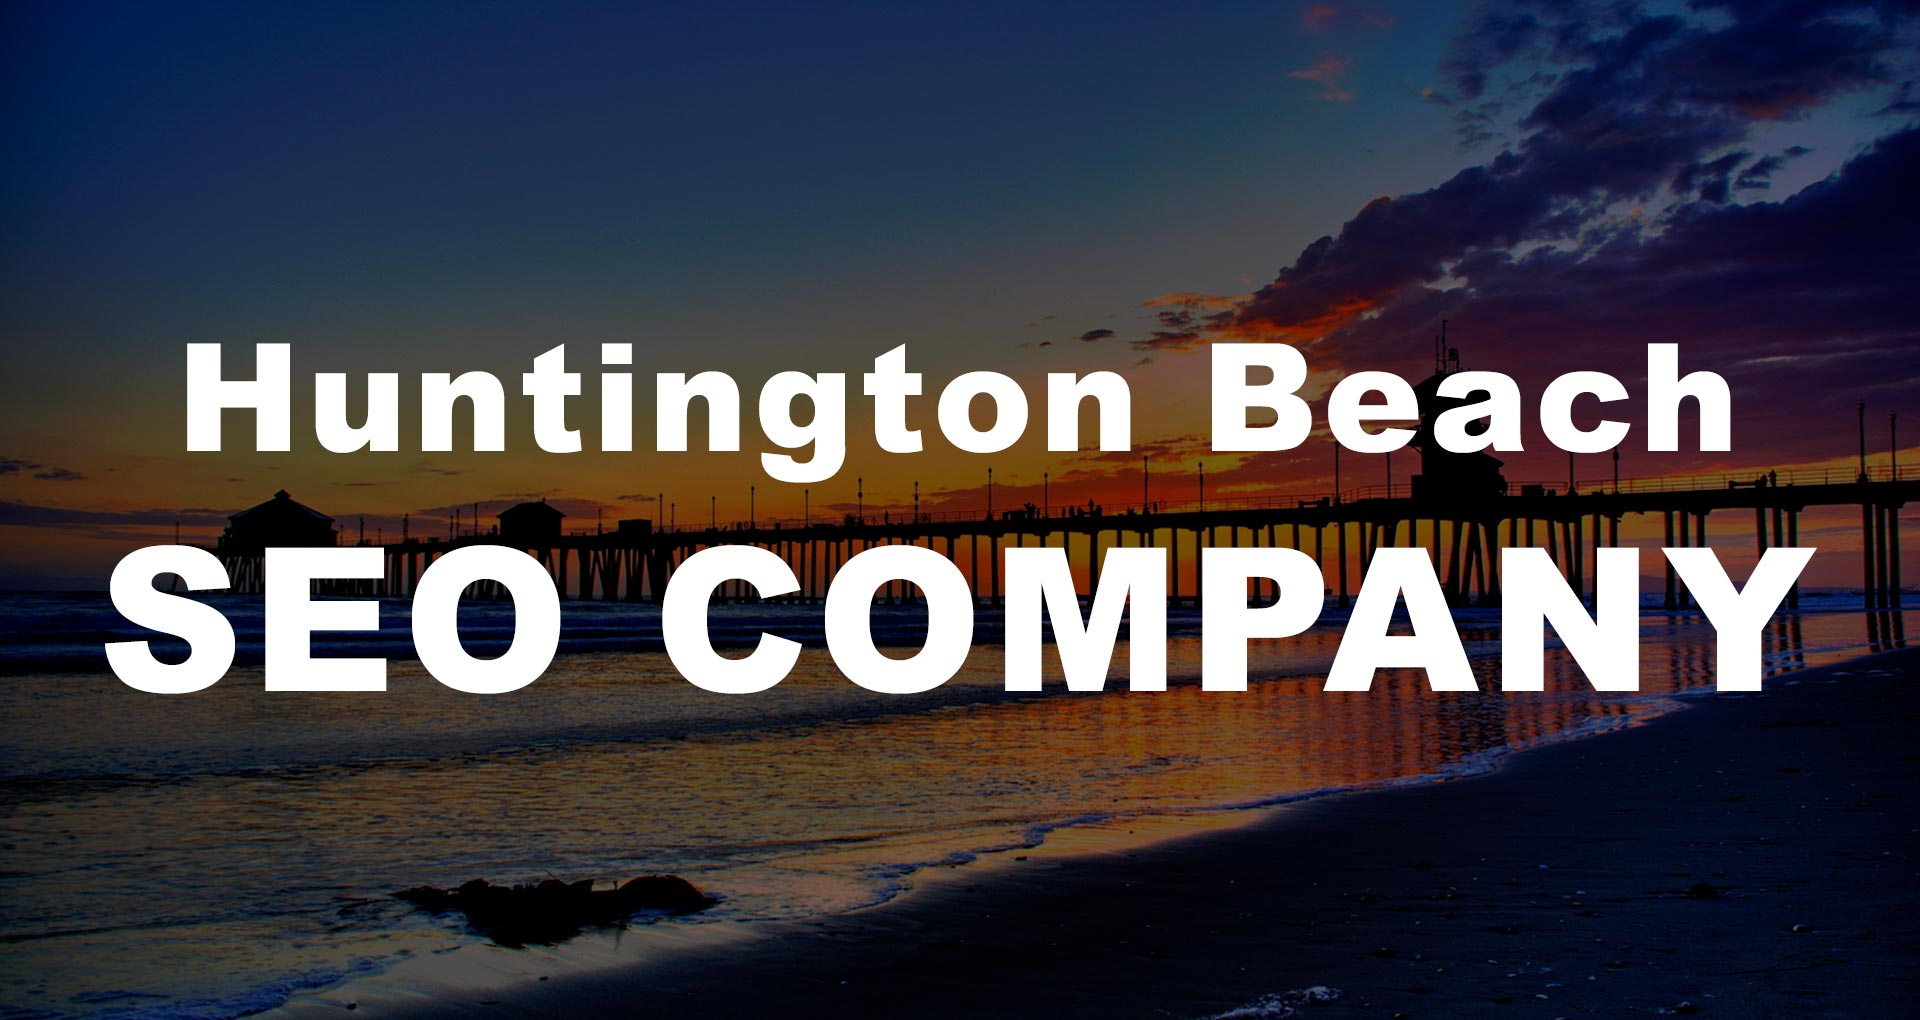 Huntington Beach SEO Company | Huntington Beach SEO Expert | Huntington Beach SEO